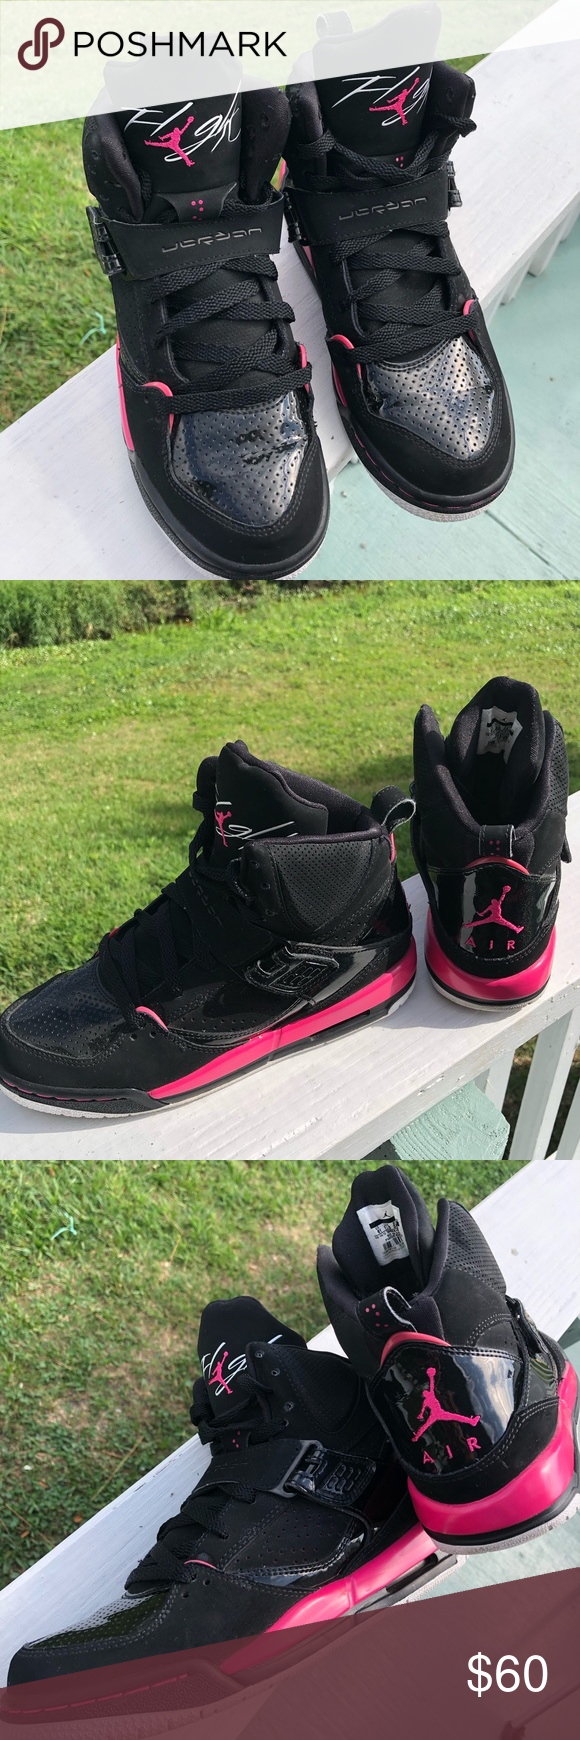 promo code cfa2c c5de4 Air Jordan Flight Shoe s Youth Size 6Y Black and Pink with shiny sparkle. Air  Jordan Flight Youth Shoes. Size 6Y. Worn only a handful of times.